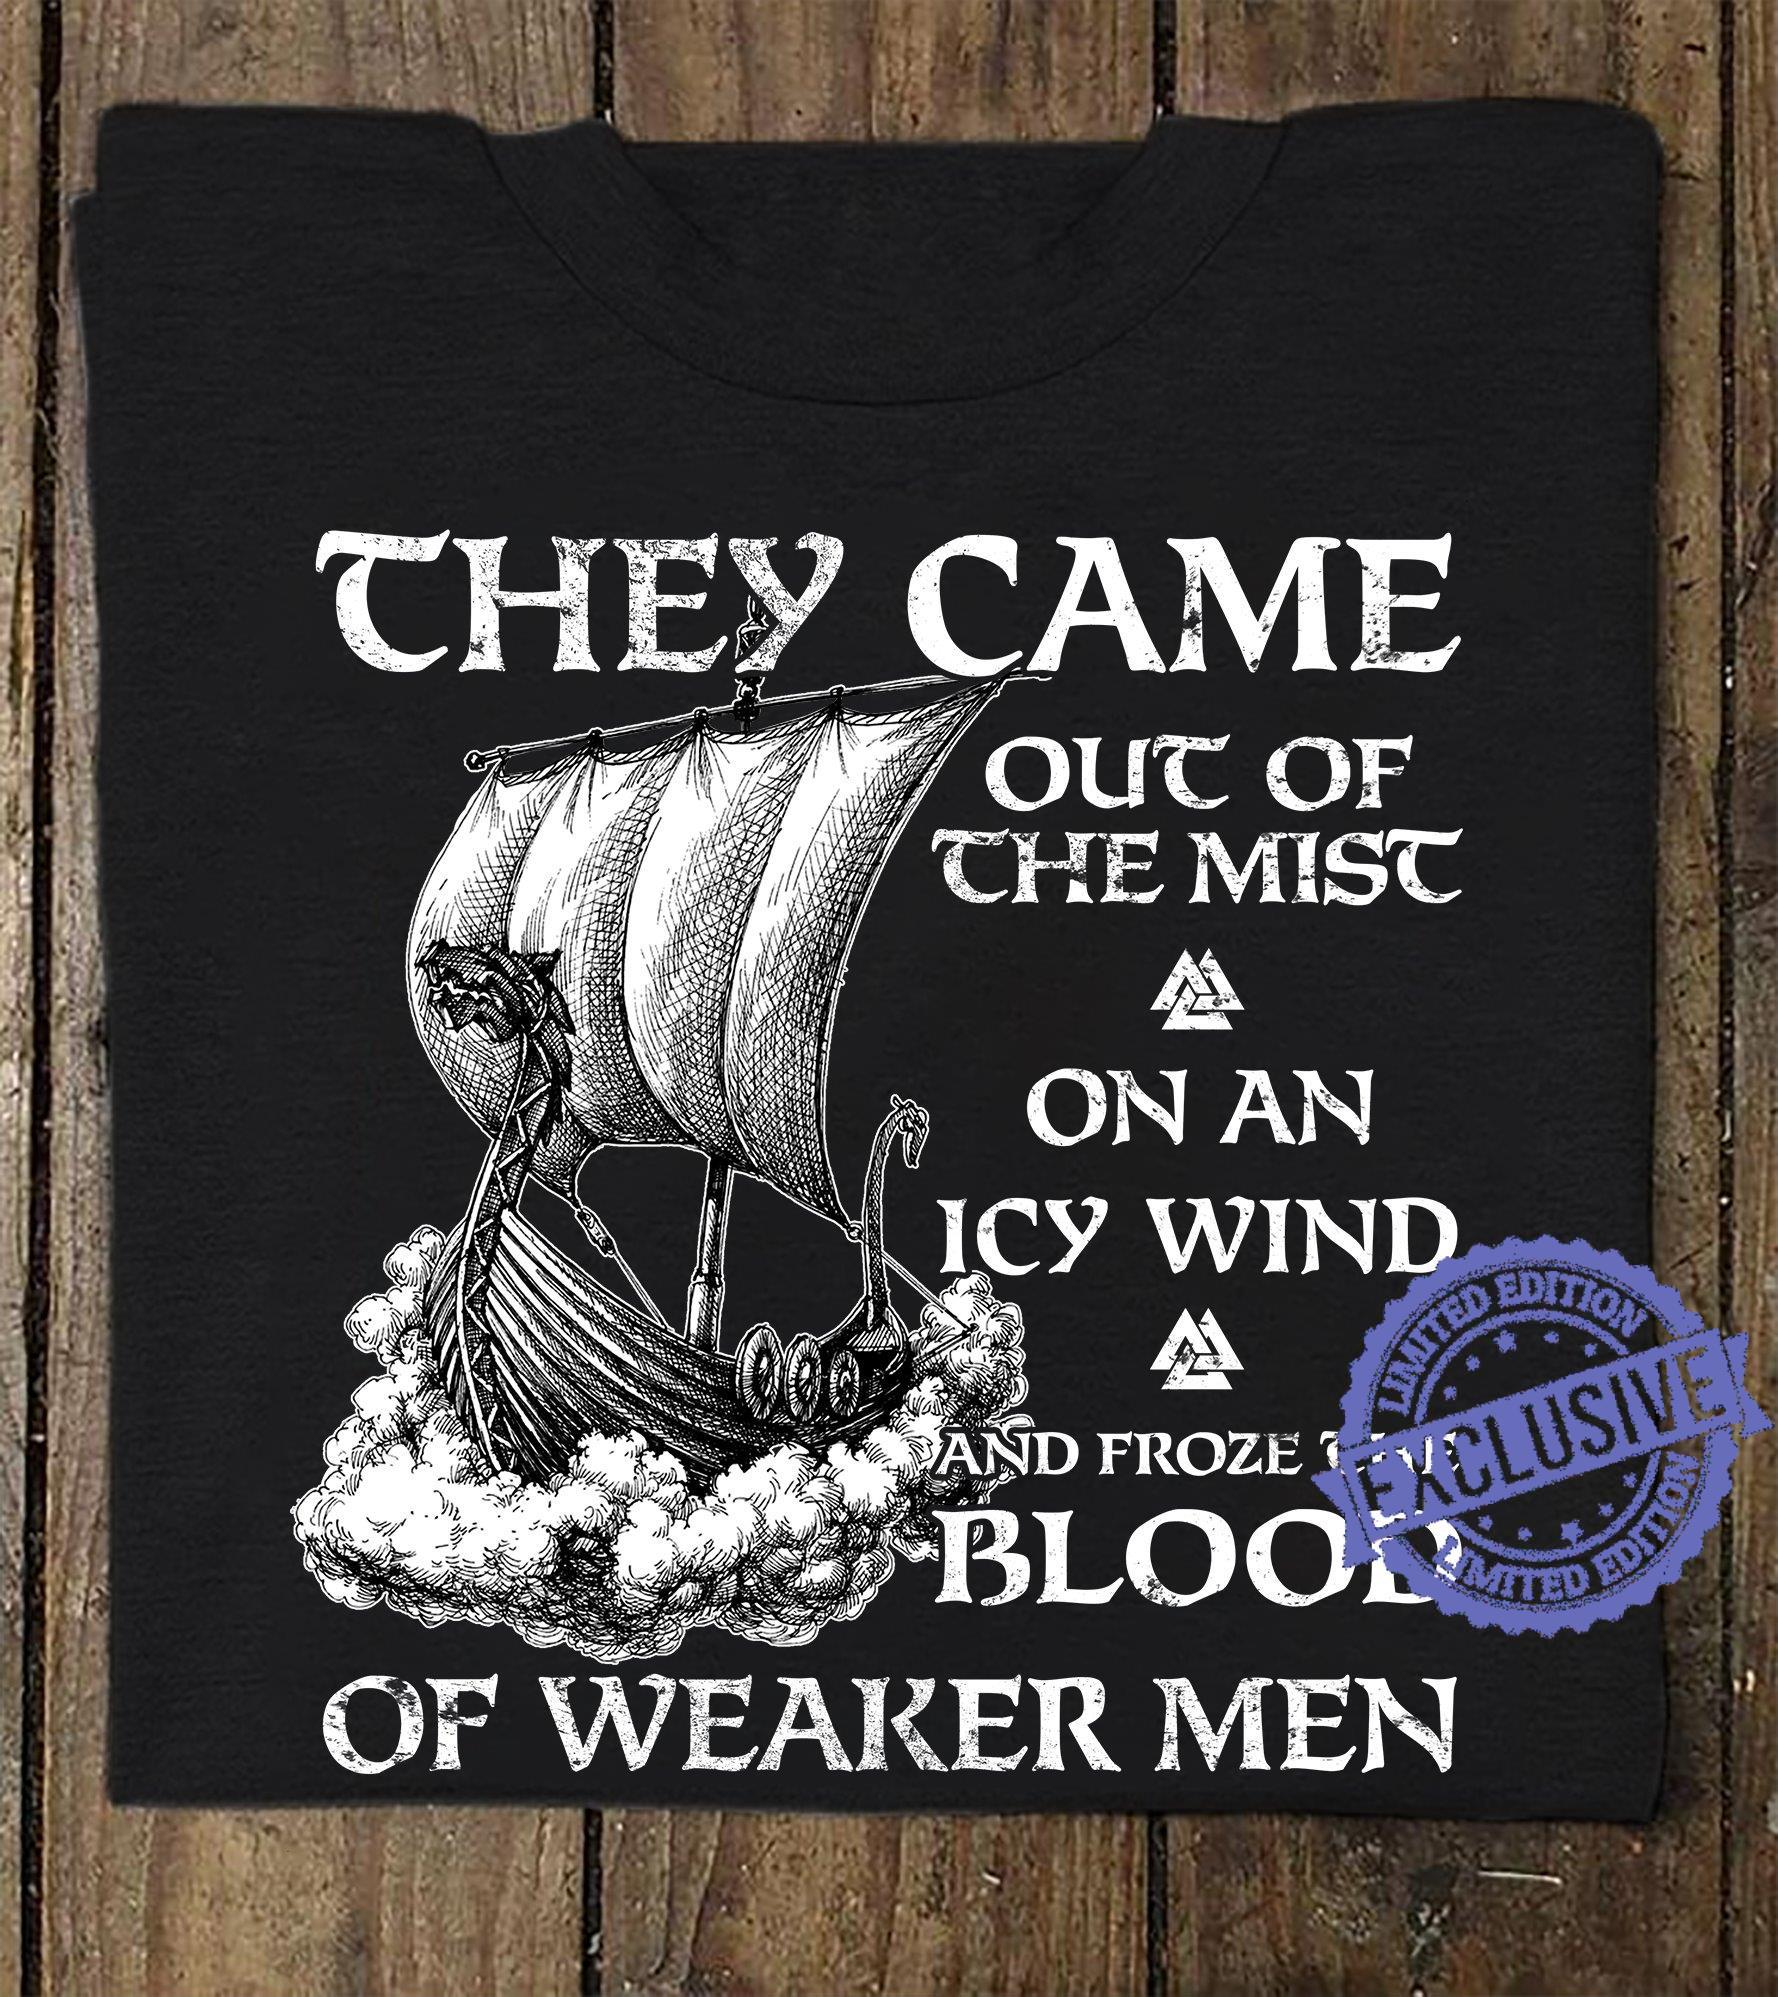 They came out of the mist on an icy wind and froze the blood shirt